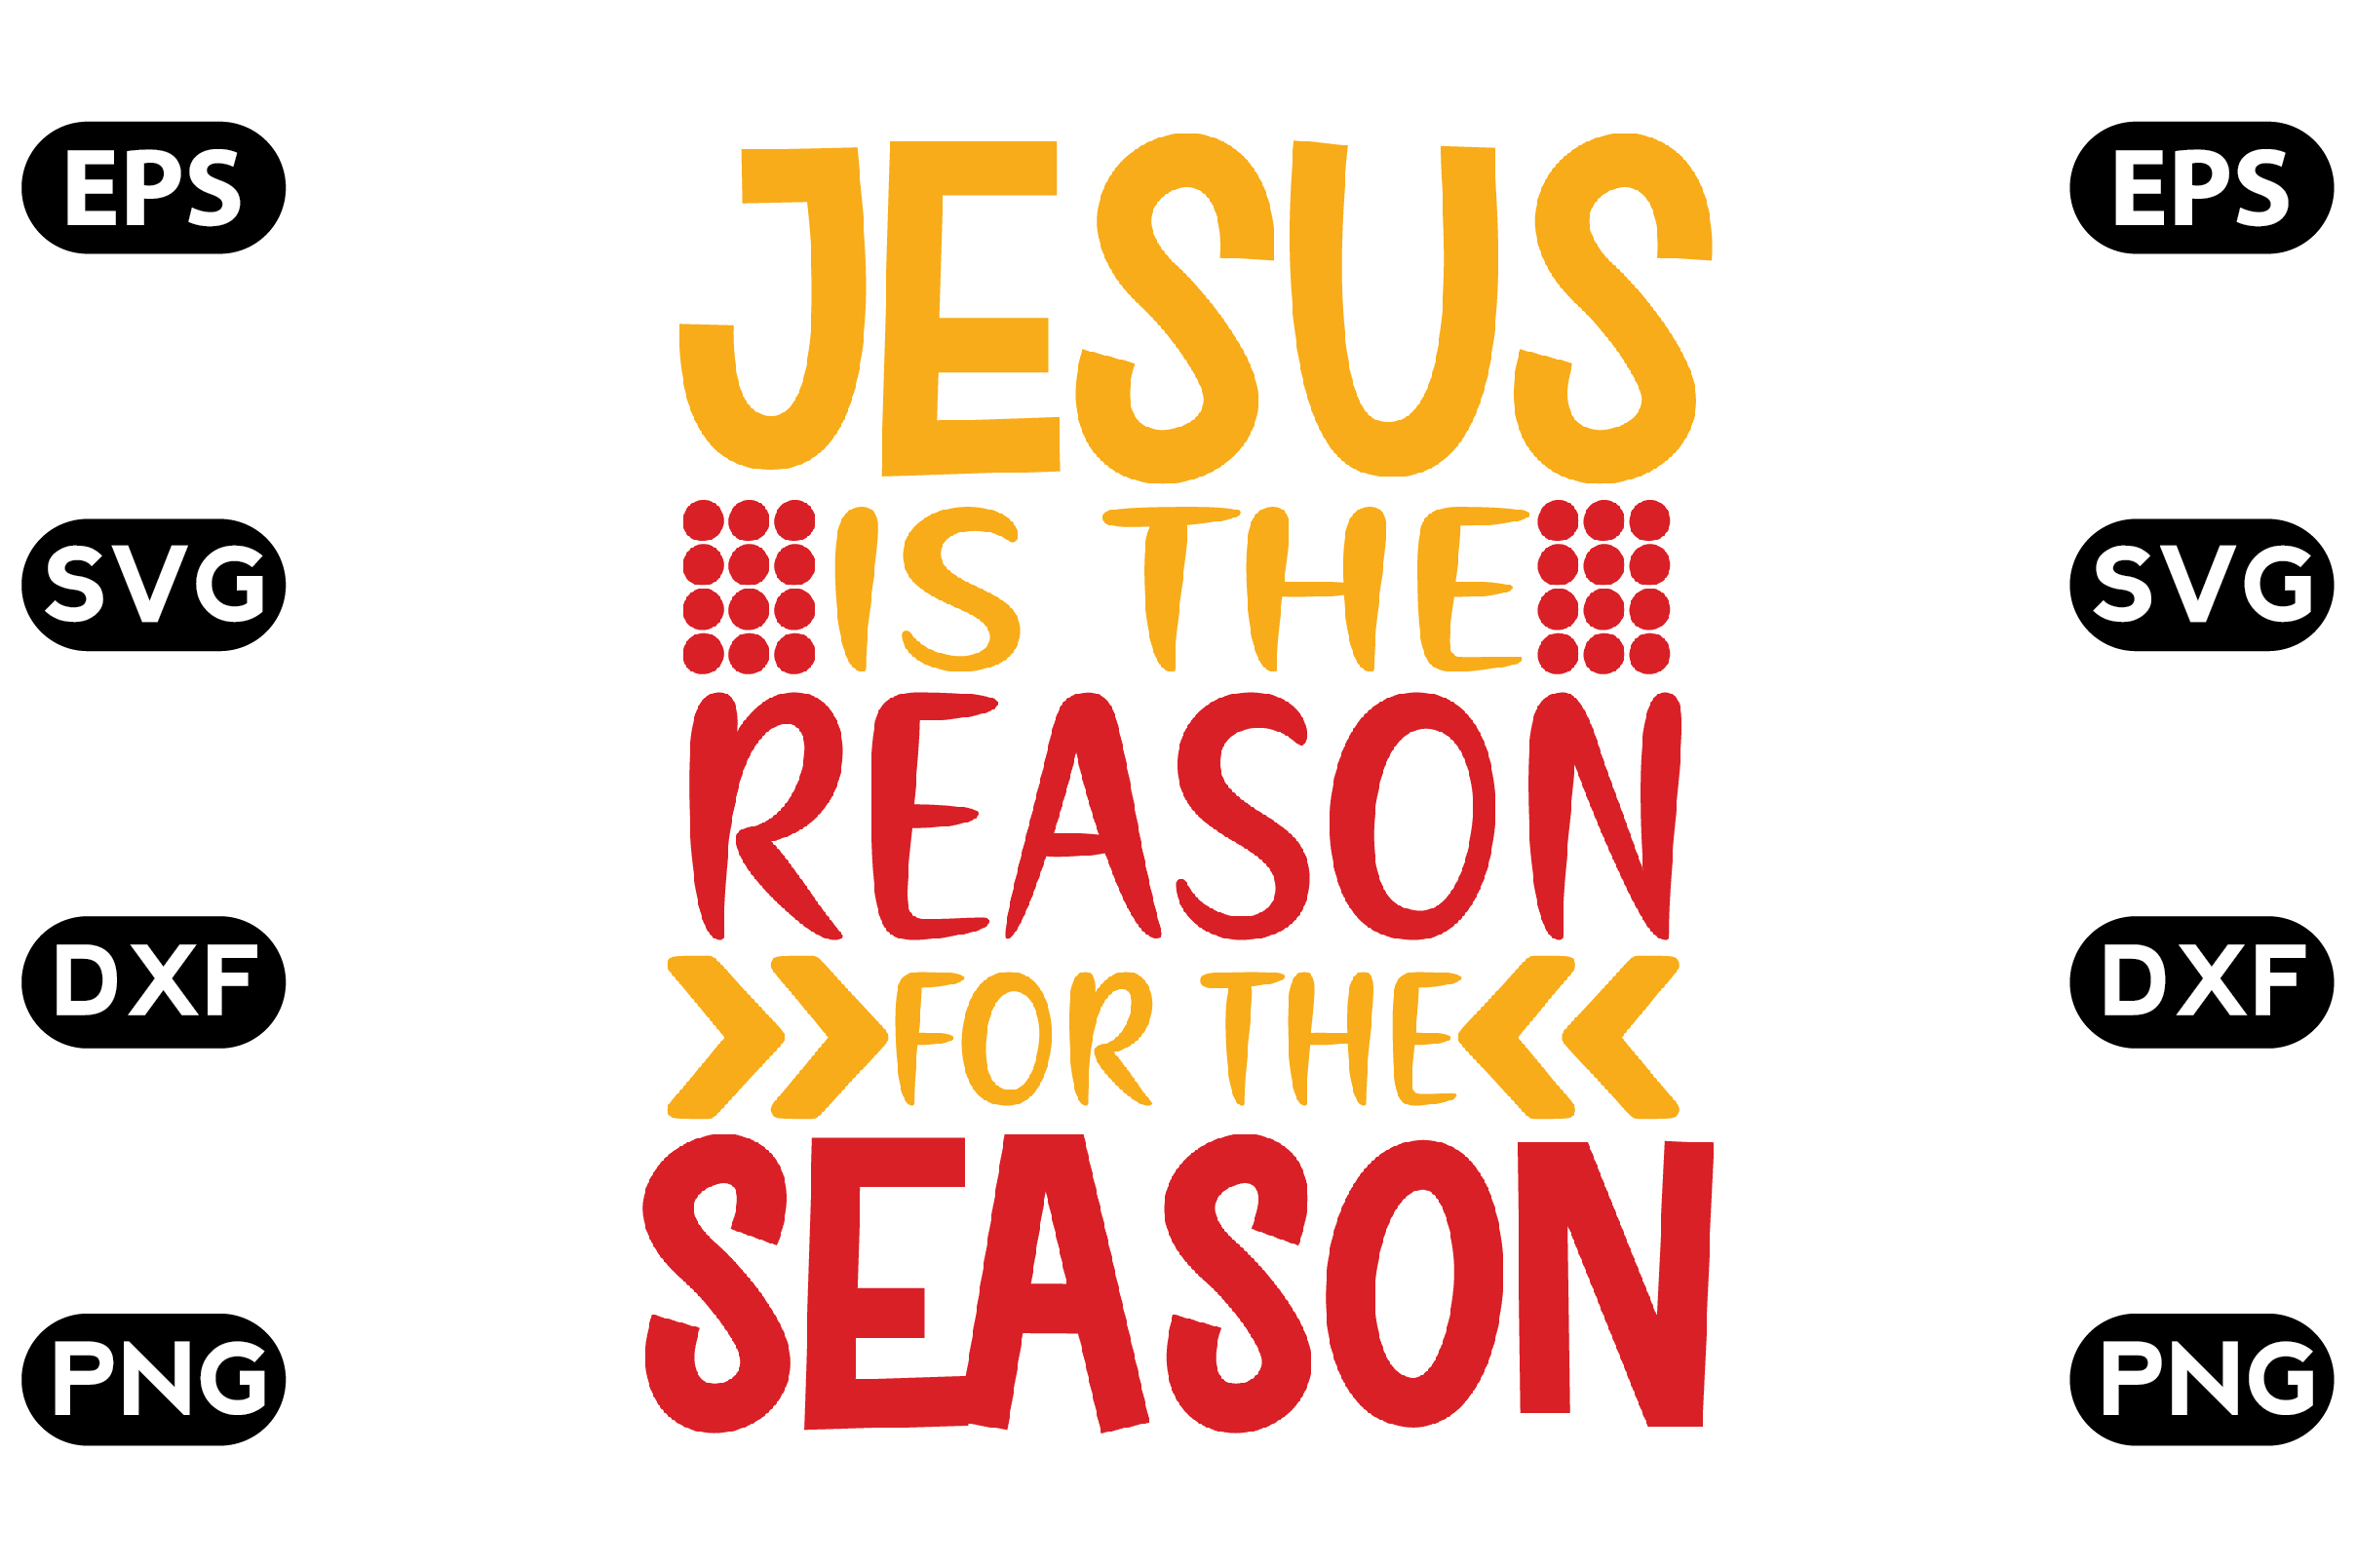 Download Free Jesus Is The Reason For The Season Graphic By Svg Store for Cricut Explore, Silhouette and other cutting machines.